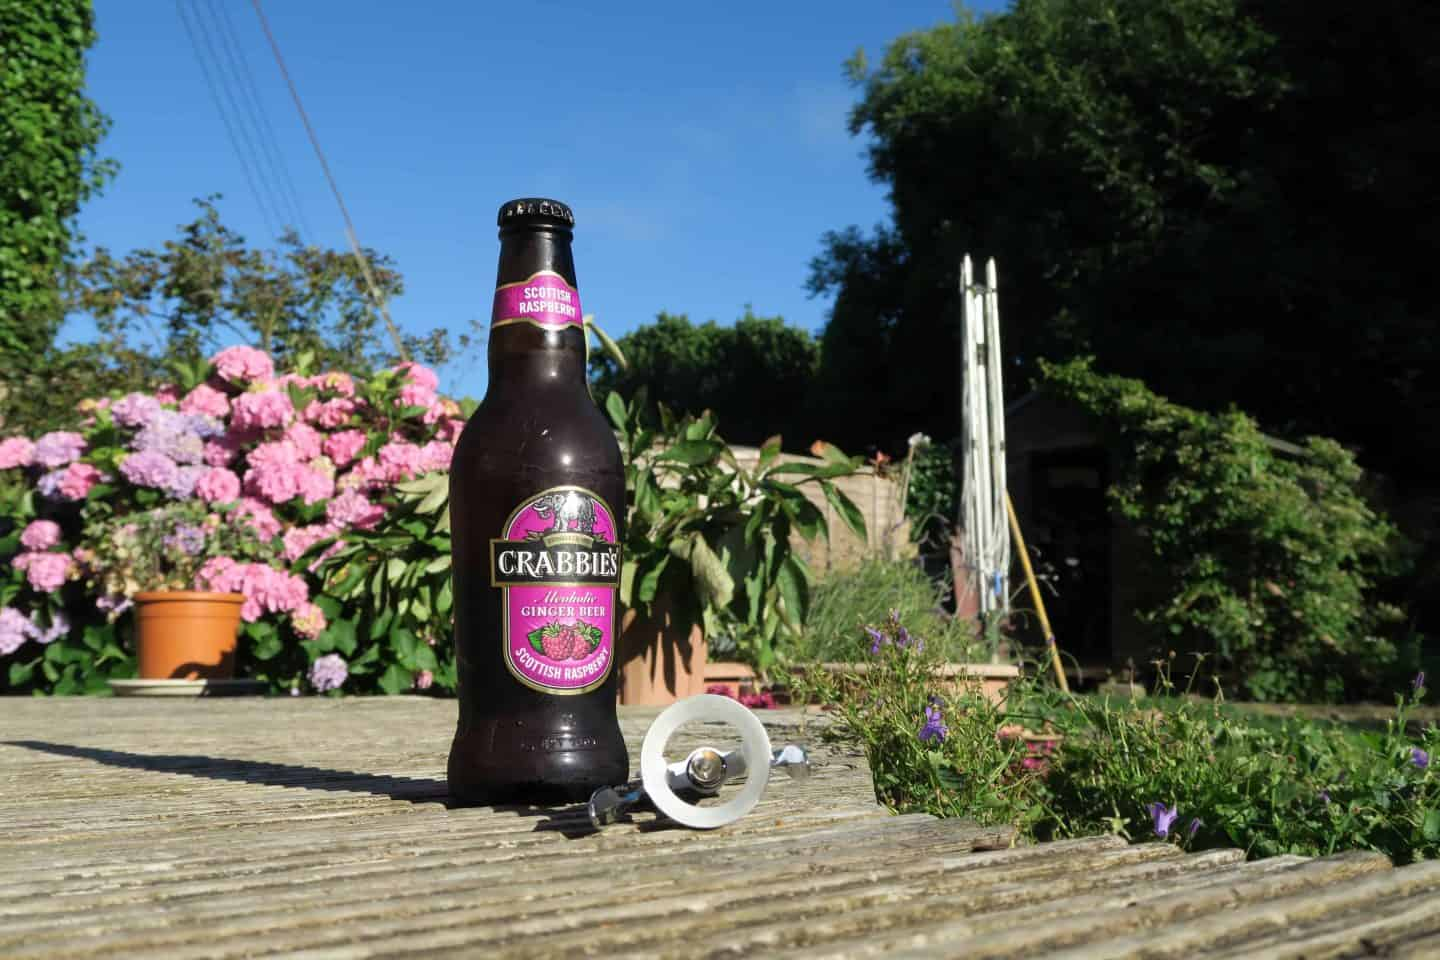 July favourites: Ginger beer, gluten free rocky roads and more…